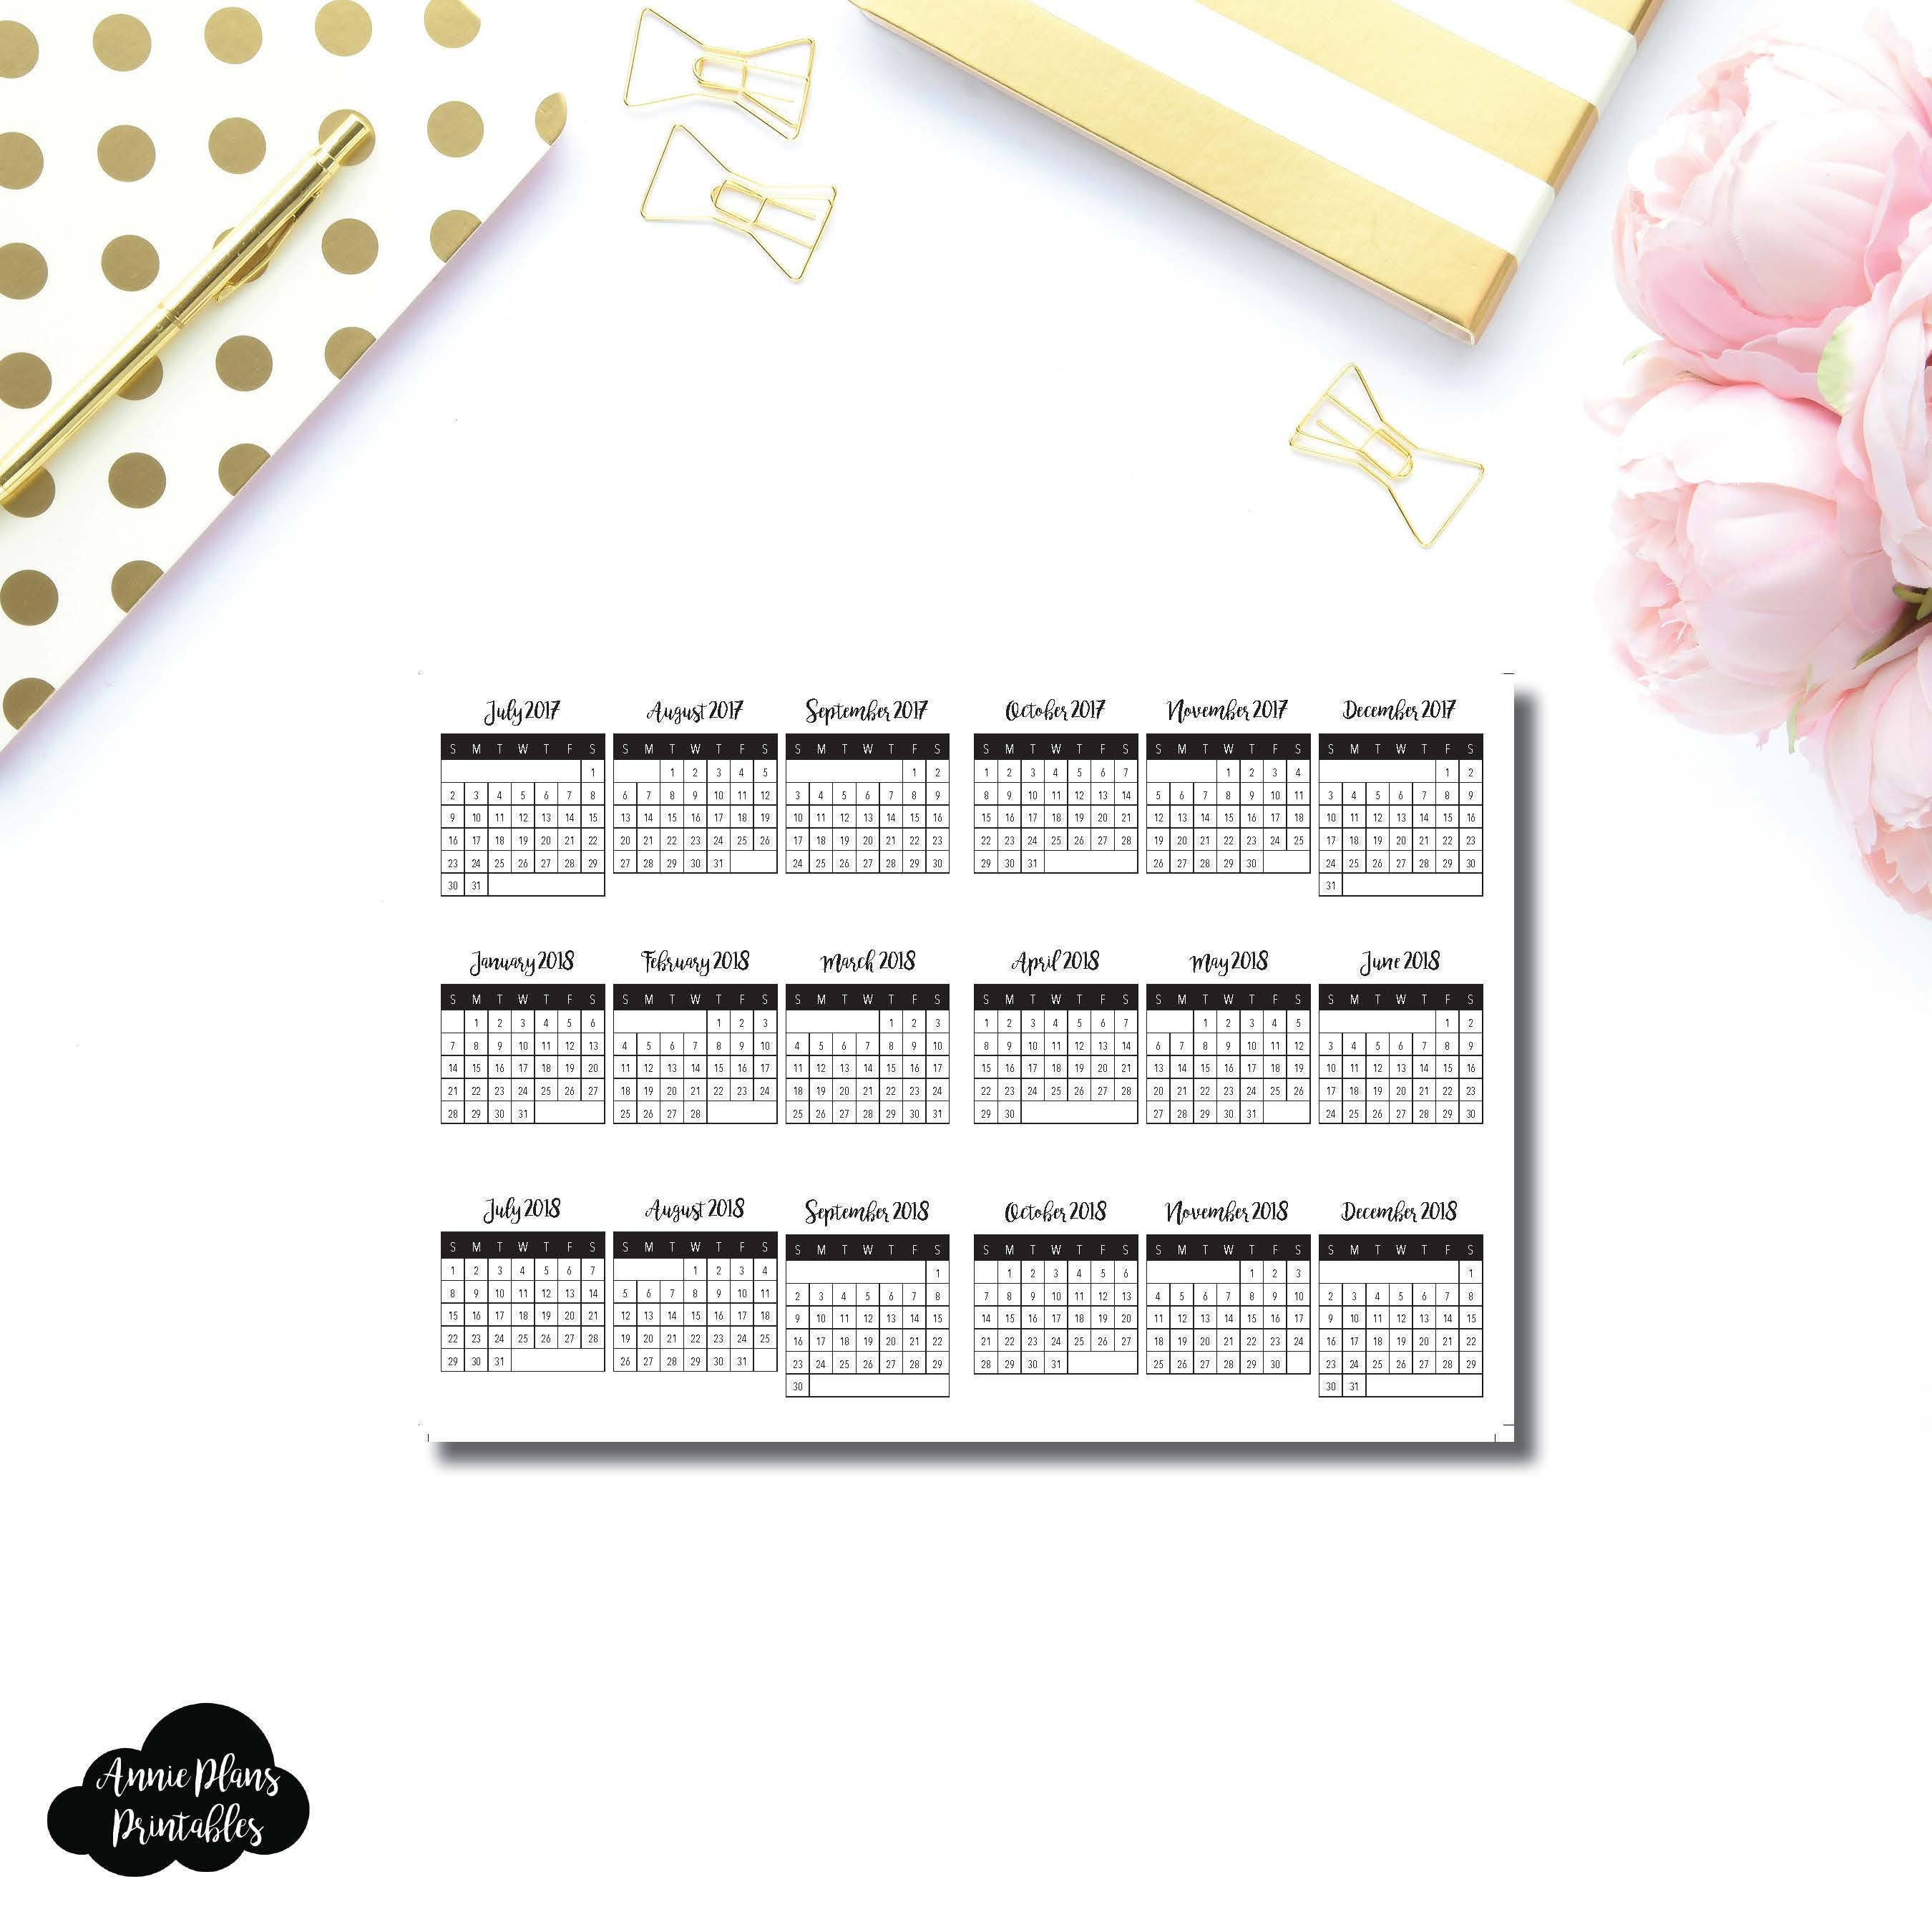 It is a graphic of Candid Free Printable B6 Inserts